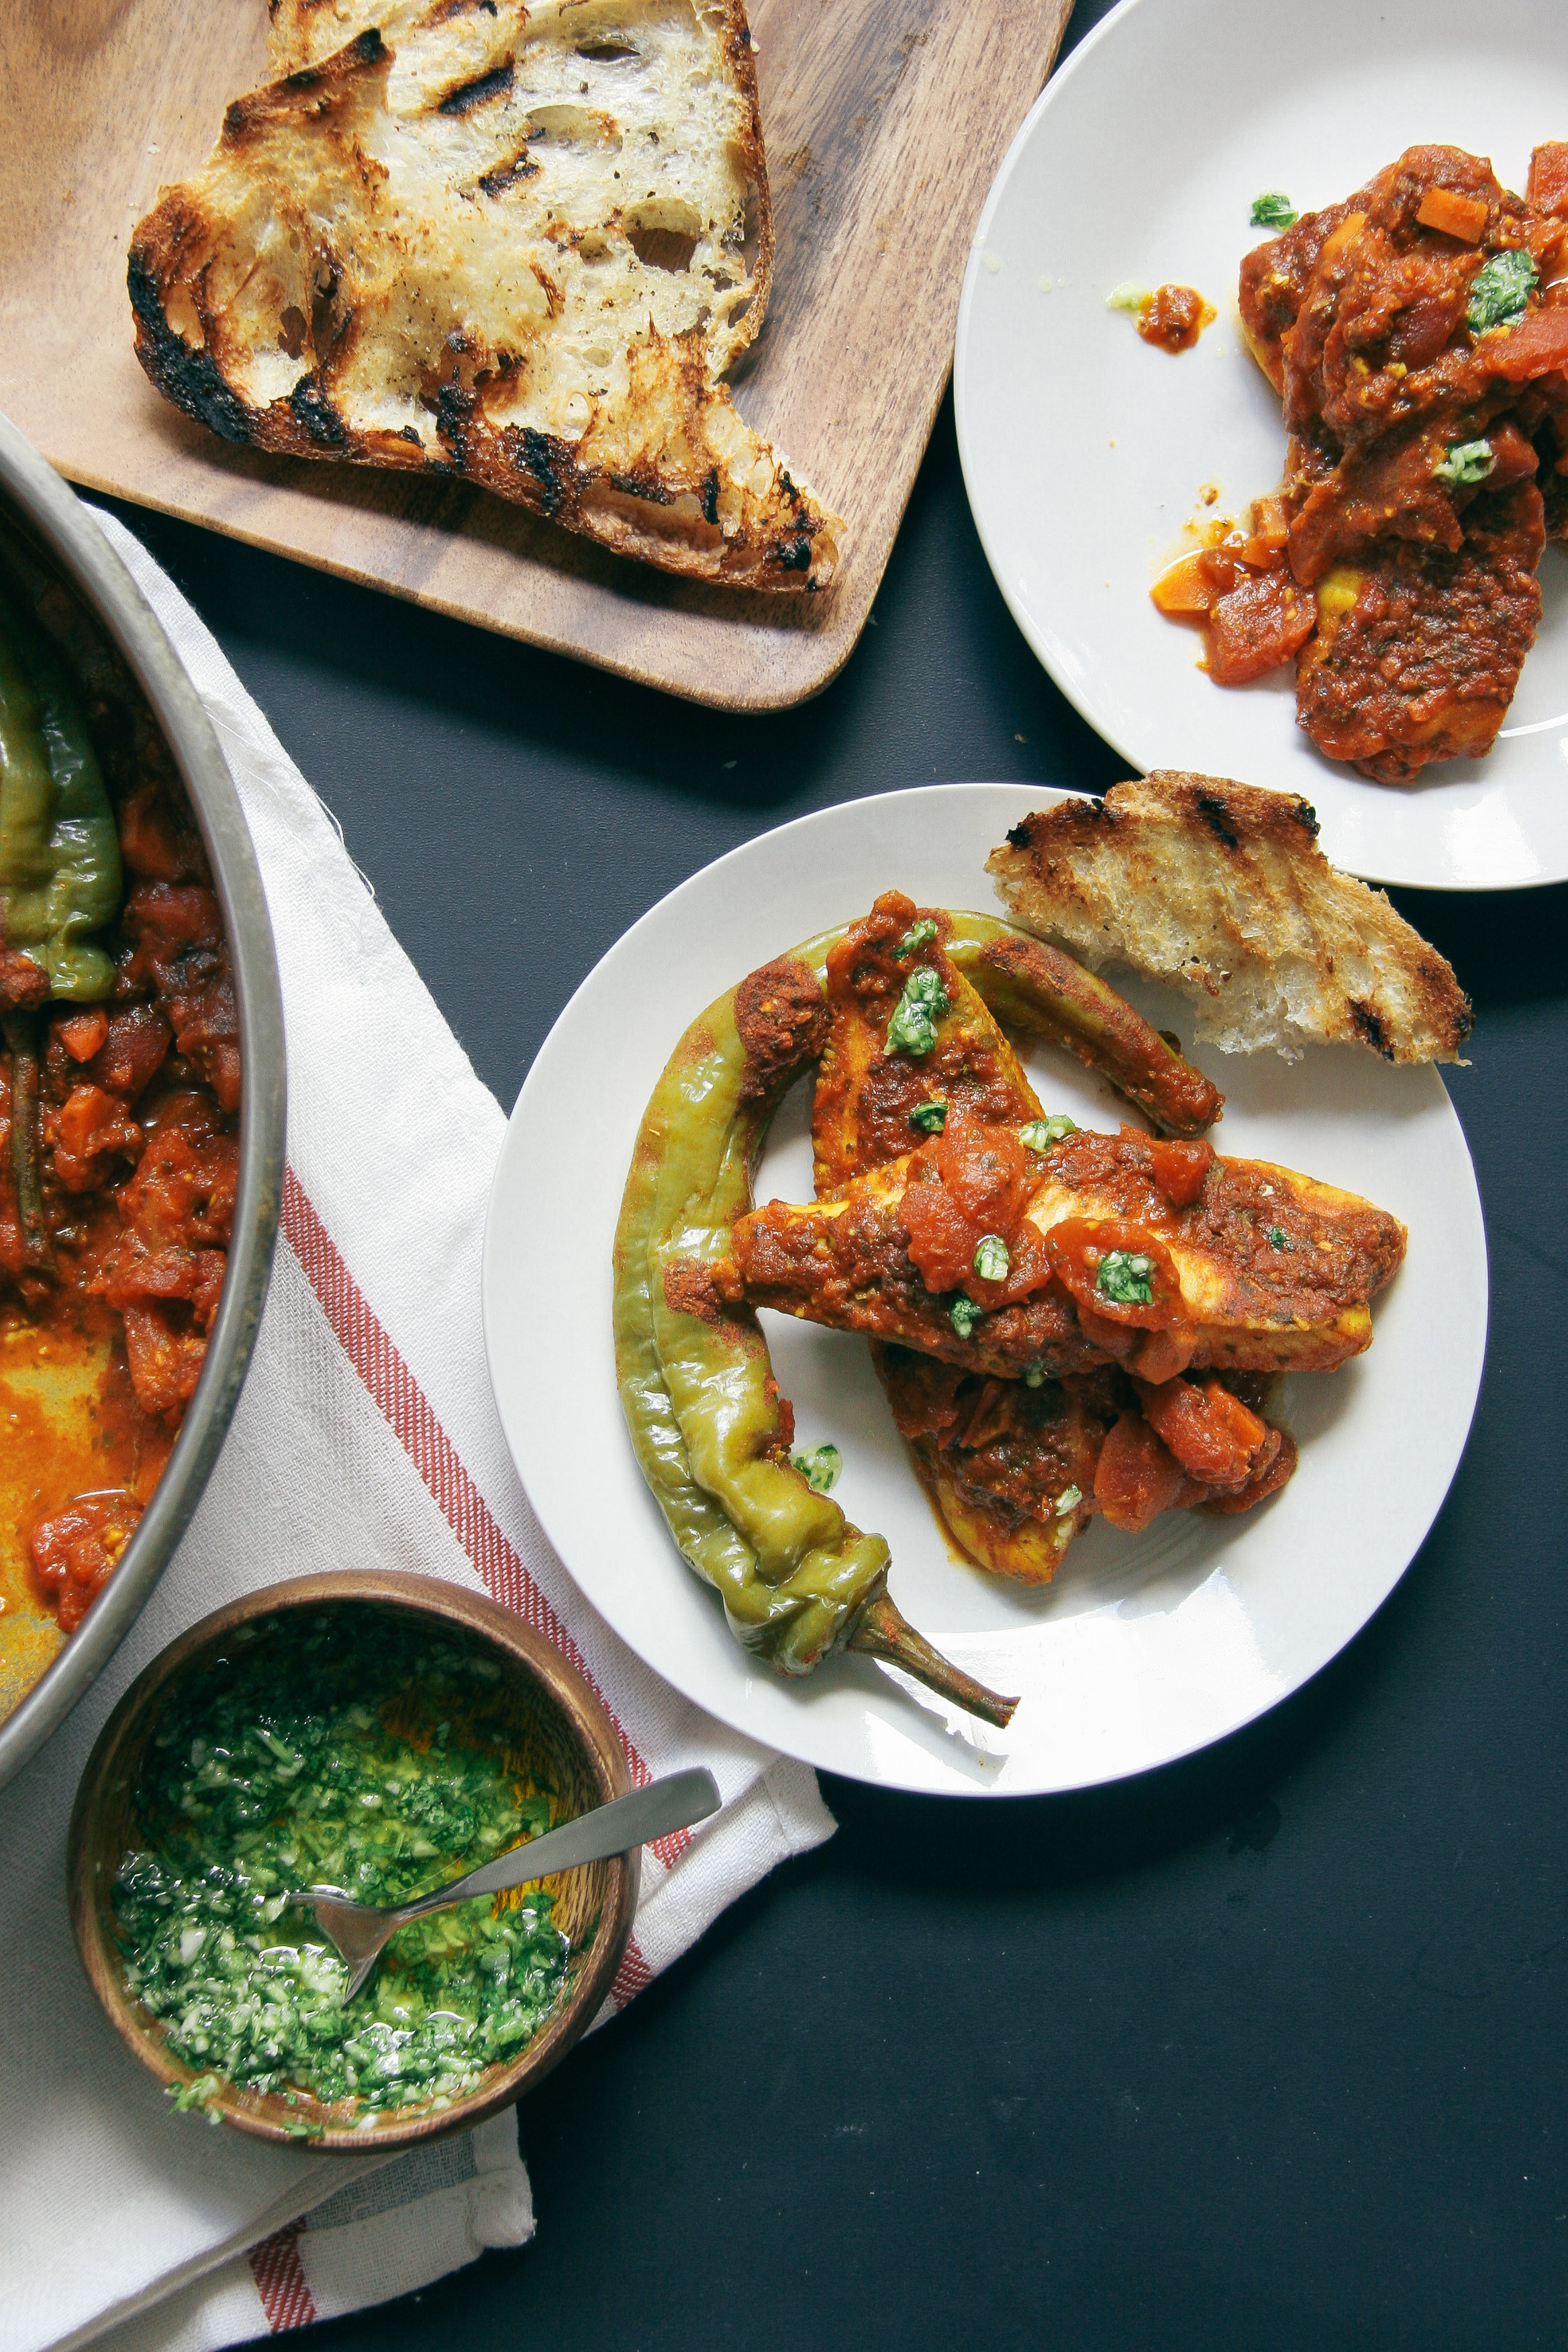 Spicy Moroccan Fish in a Tomato Sauce   I Will Not Eat Oysters